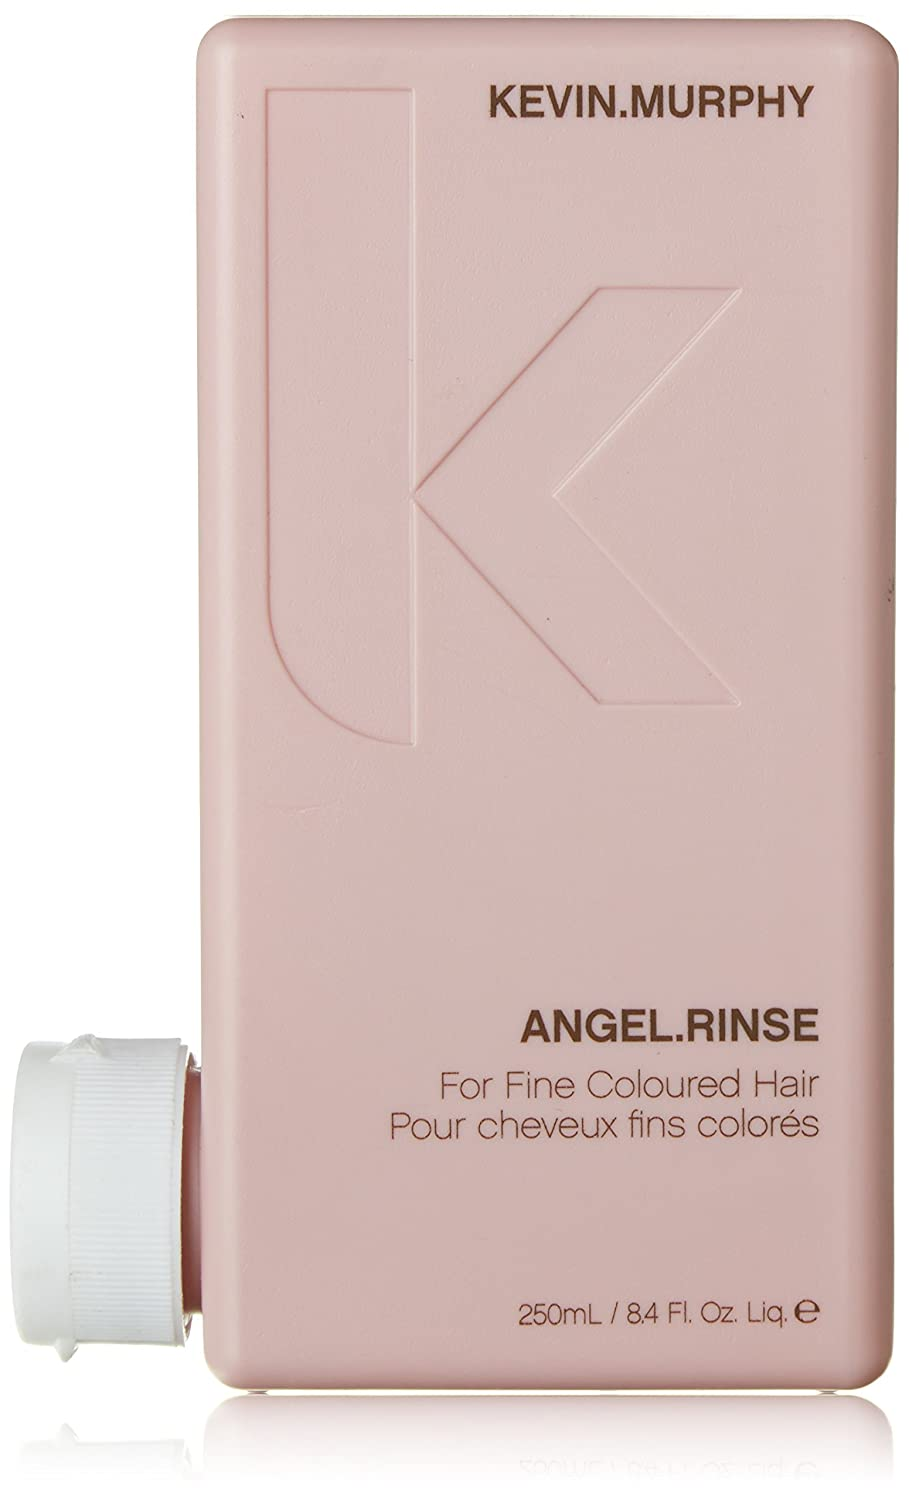 Kevin Murphy Angel Rinse for Fine Coloured Hair